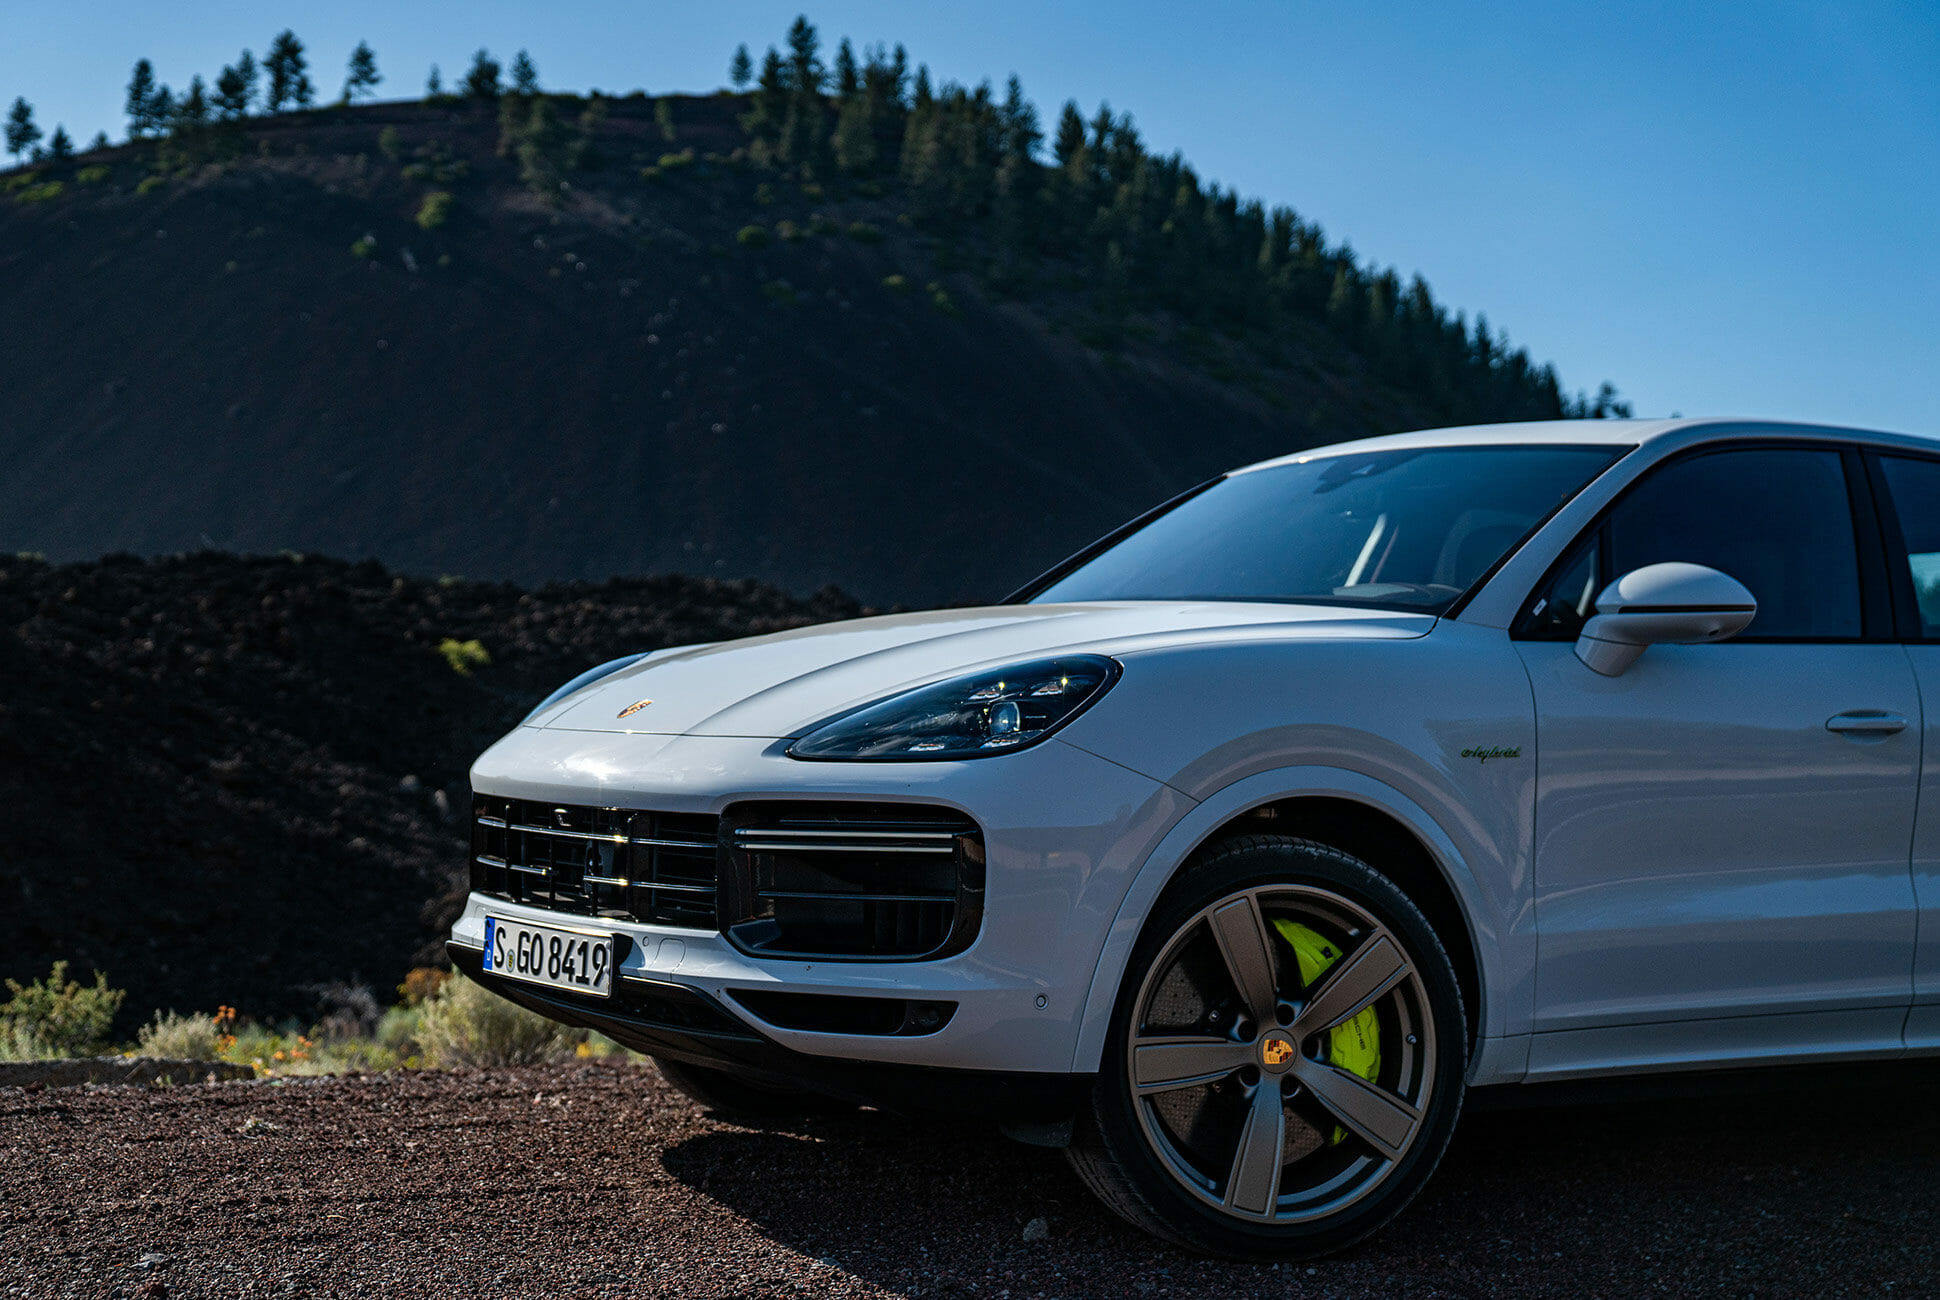 Pair-of-High-Tech-Porsche-Cayenne-Hybrids-gear-patrol-Lava-ambience-7